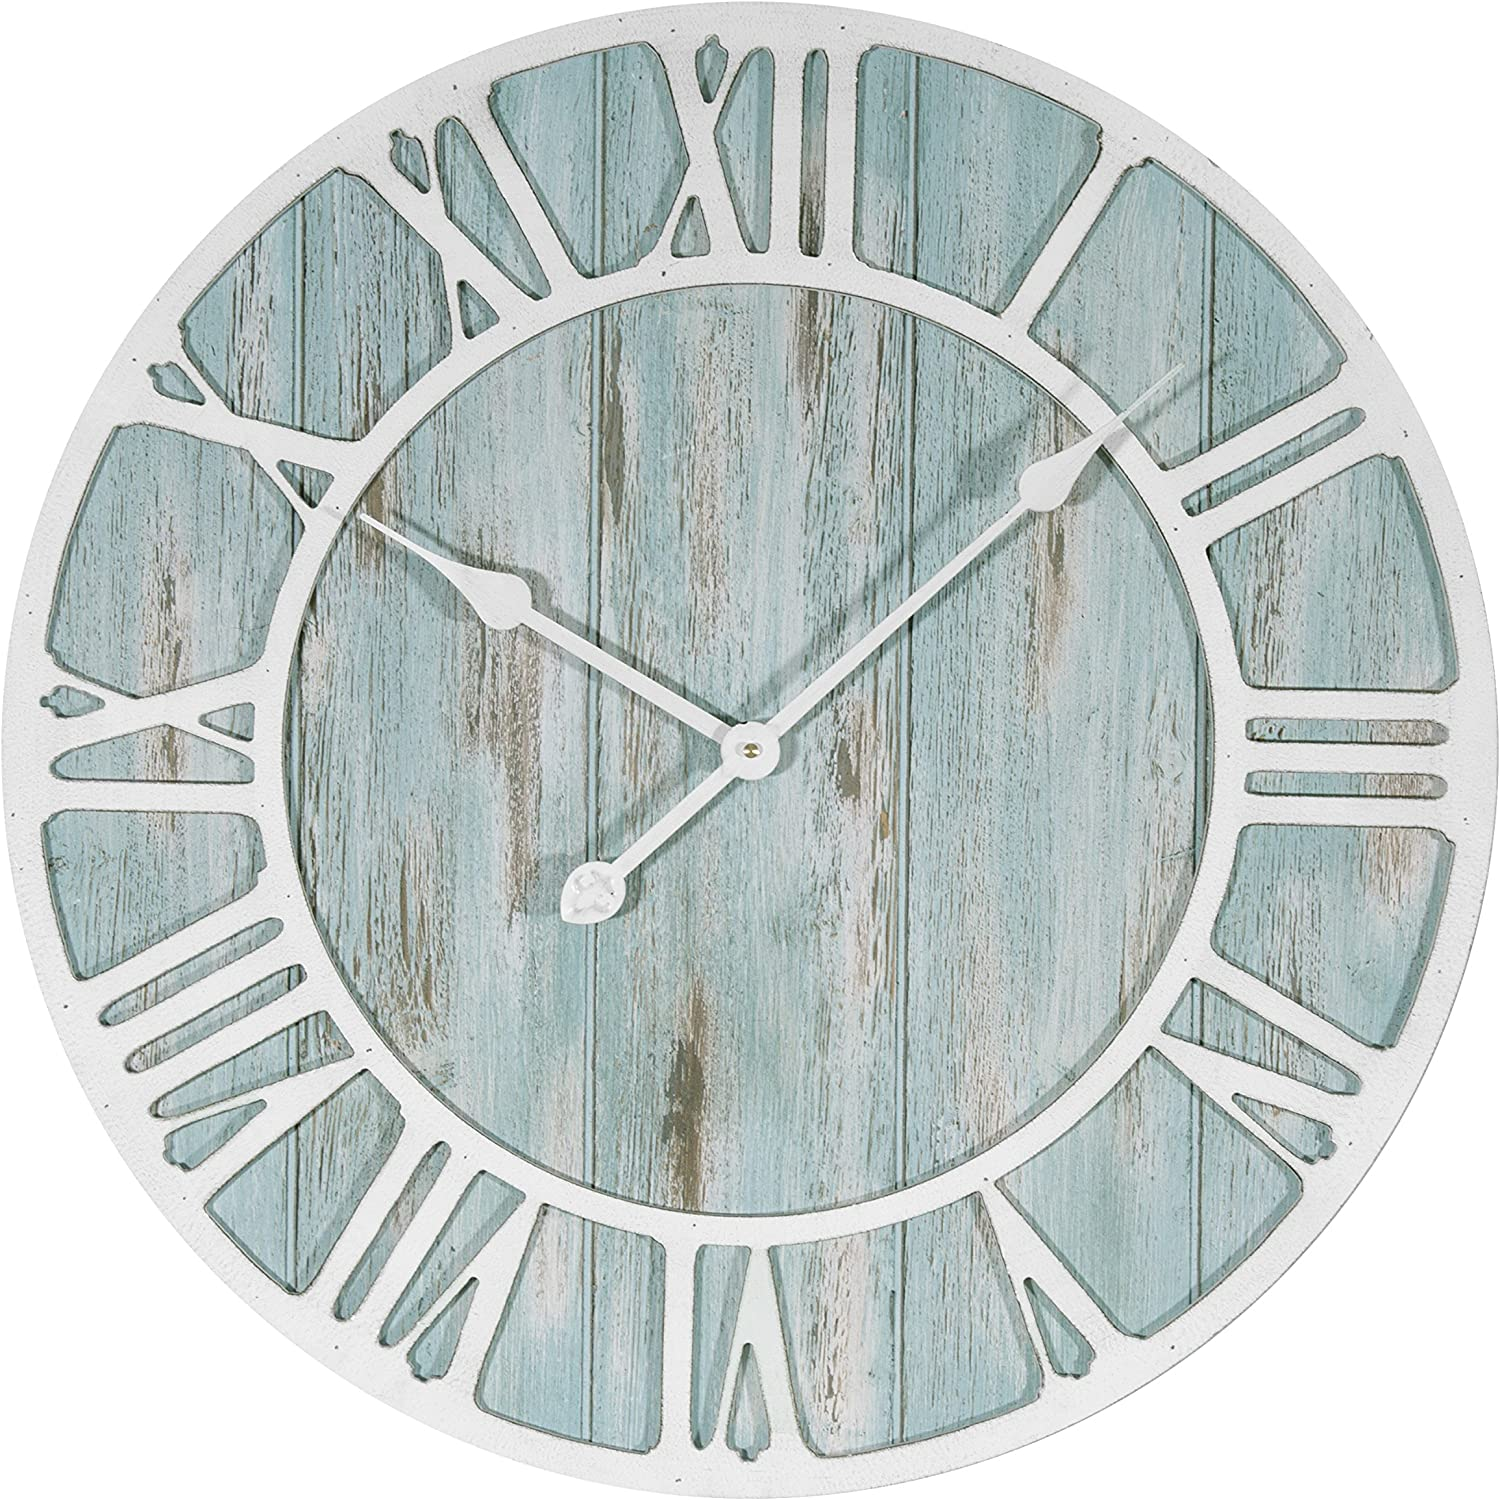 "La Crosse 404-4060 23.5"" Coastal Extra-Large Decorative Quartz Wall Clock, Blue-Green"